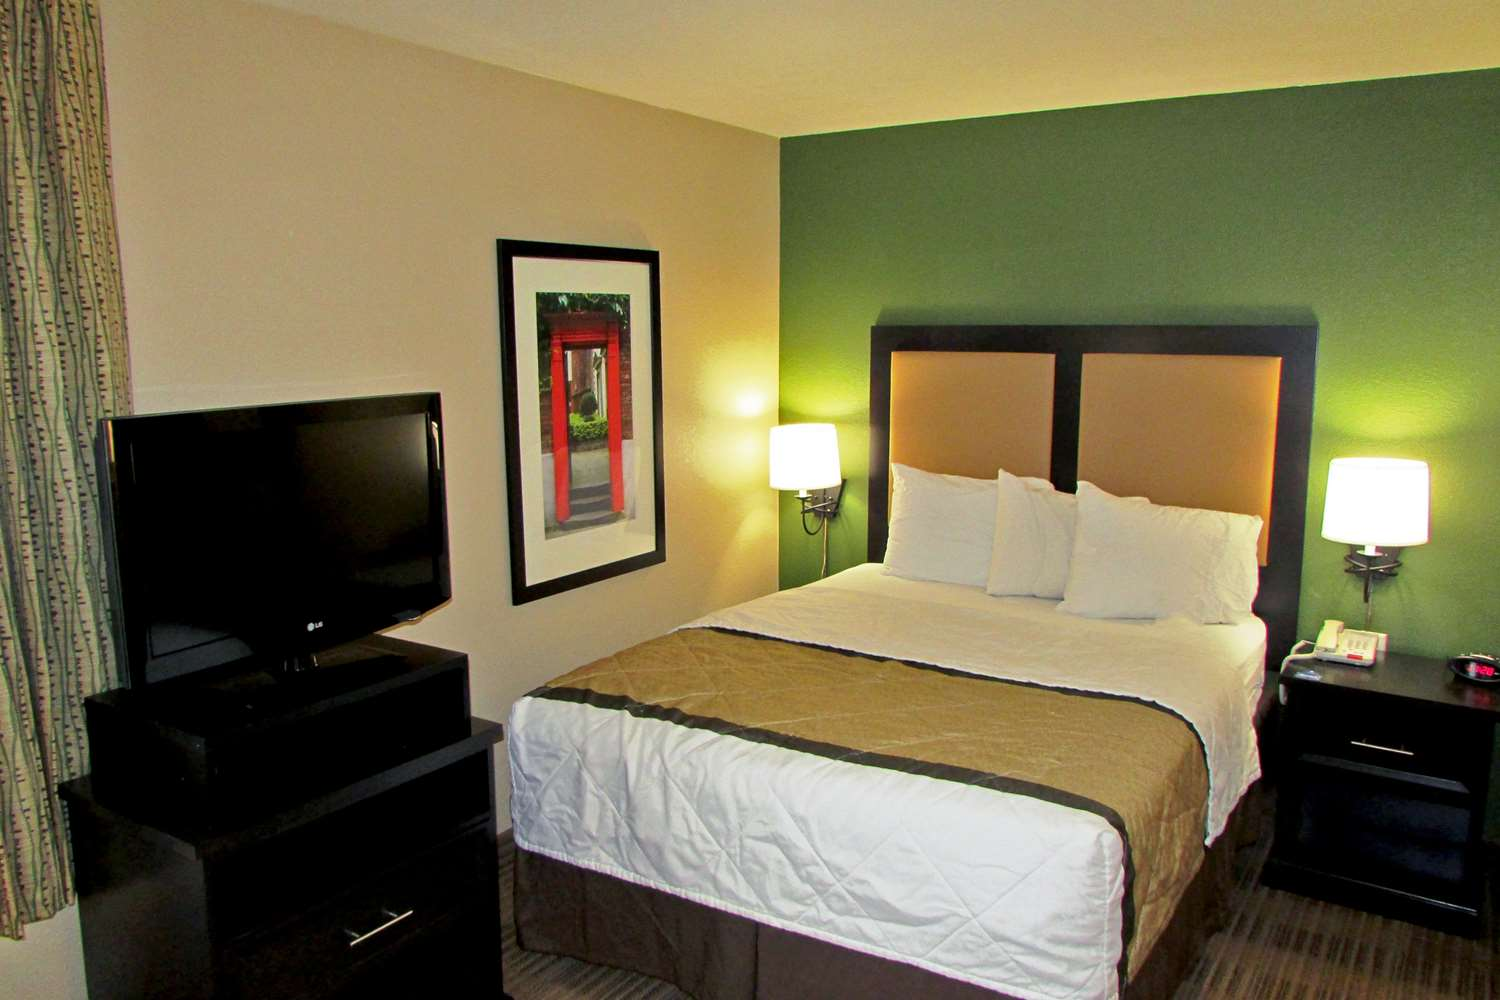 Bed And Breakfast Woburn Extended Stay America Hotel Woburn Ma See Discounts